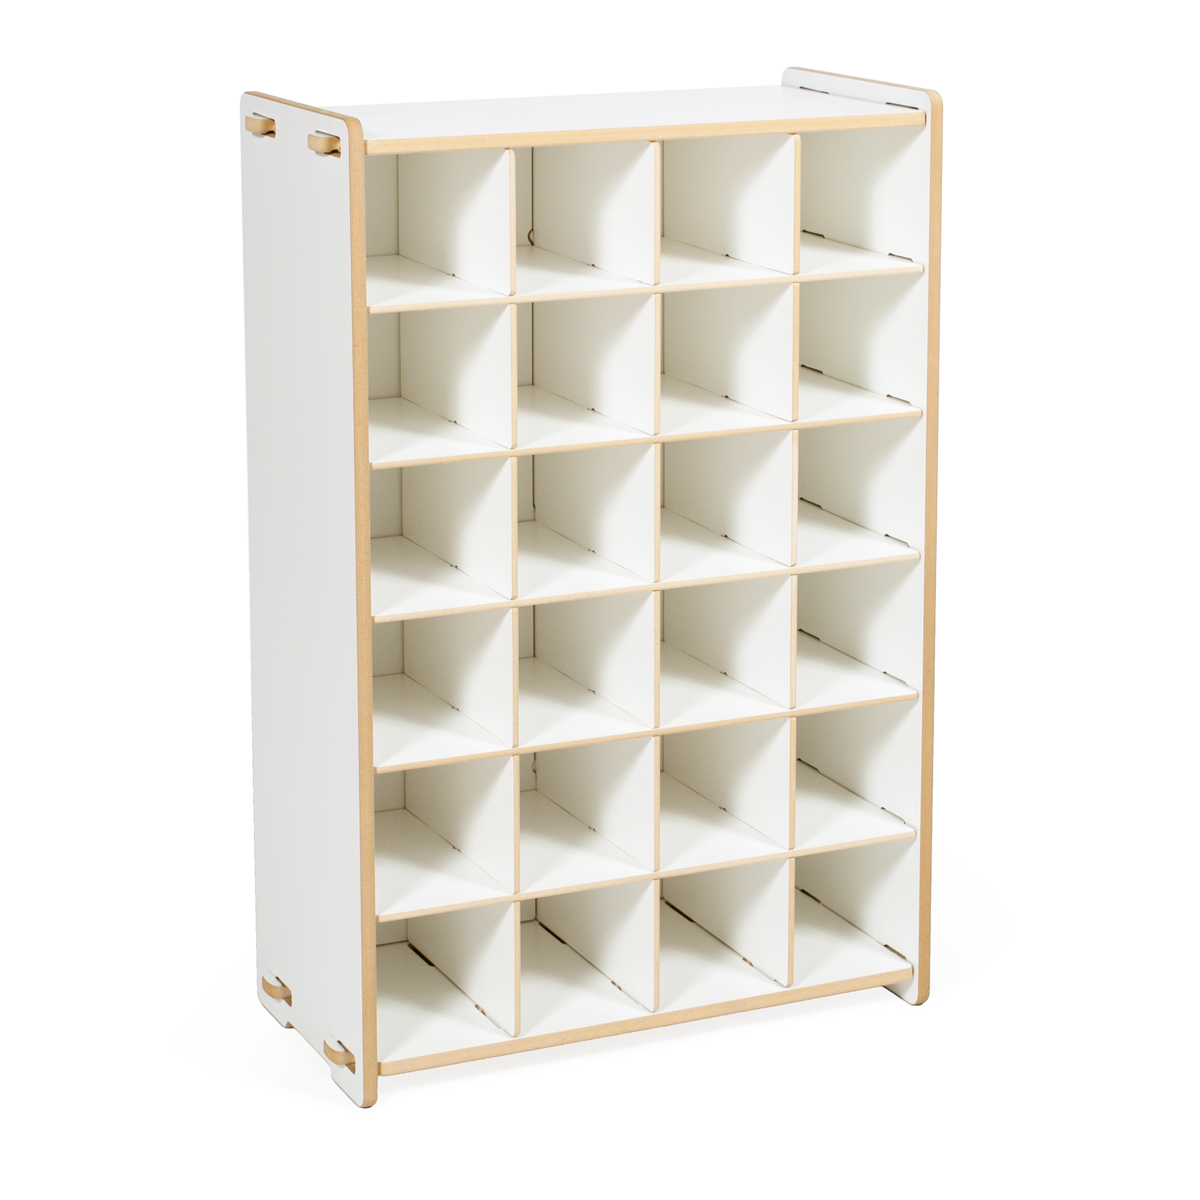 Kids Shoe Organizer - White